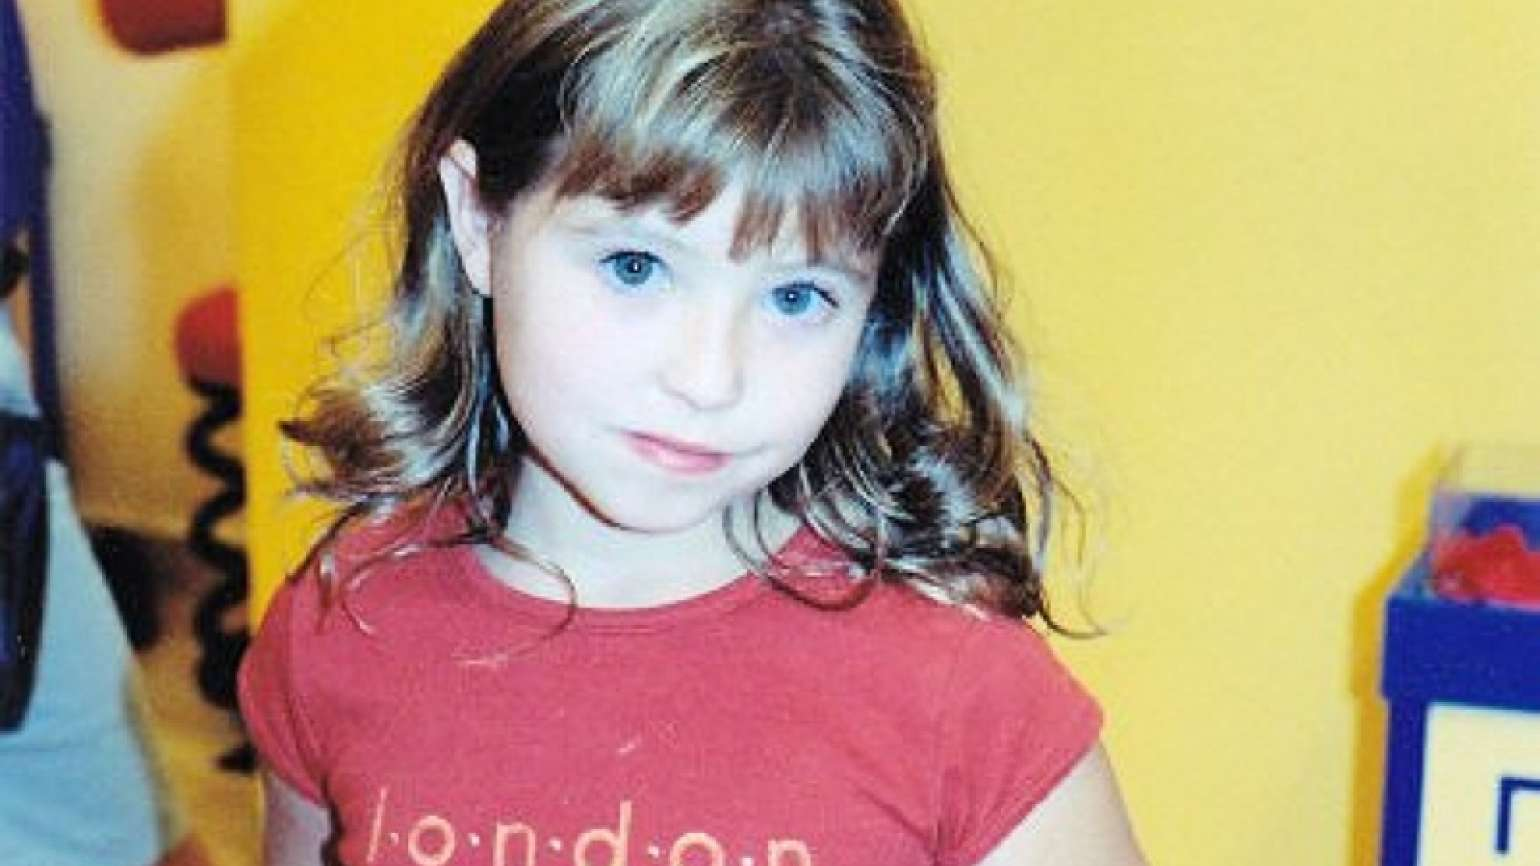 Inspirational Stories blogger Michelle Medlock Adams' daughter Abby as a child